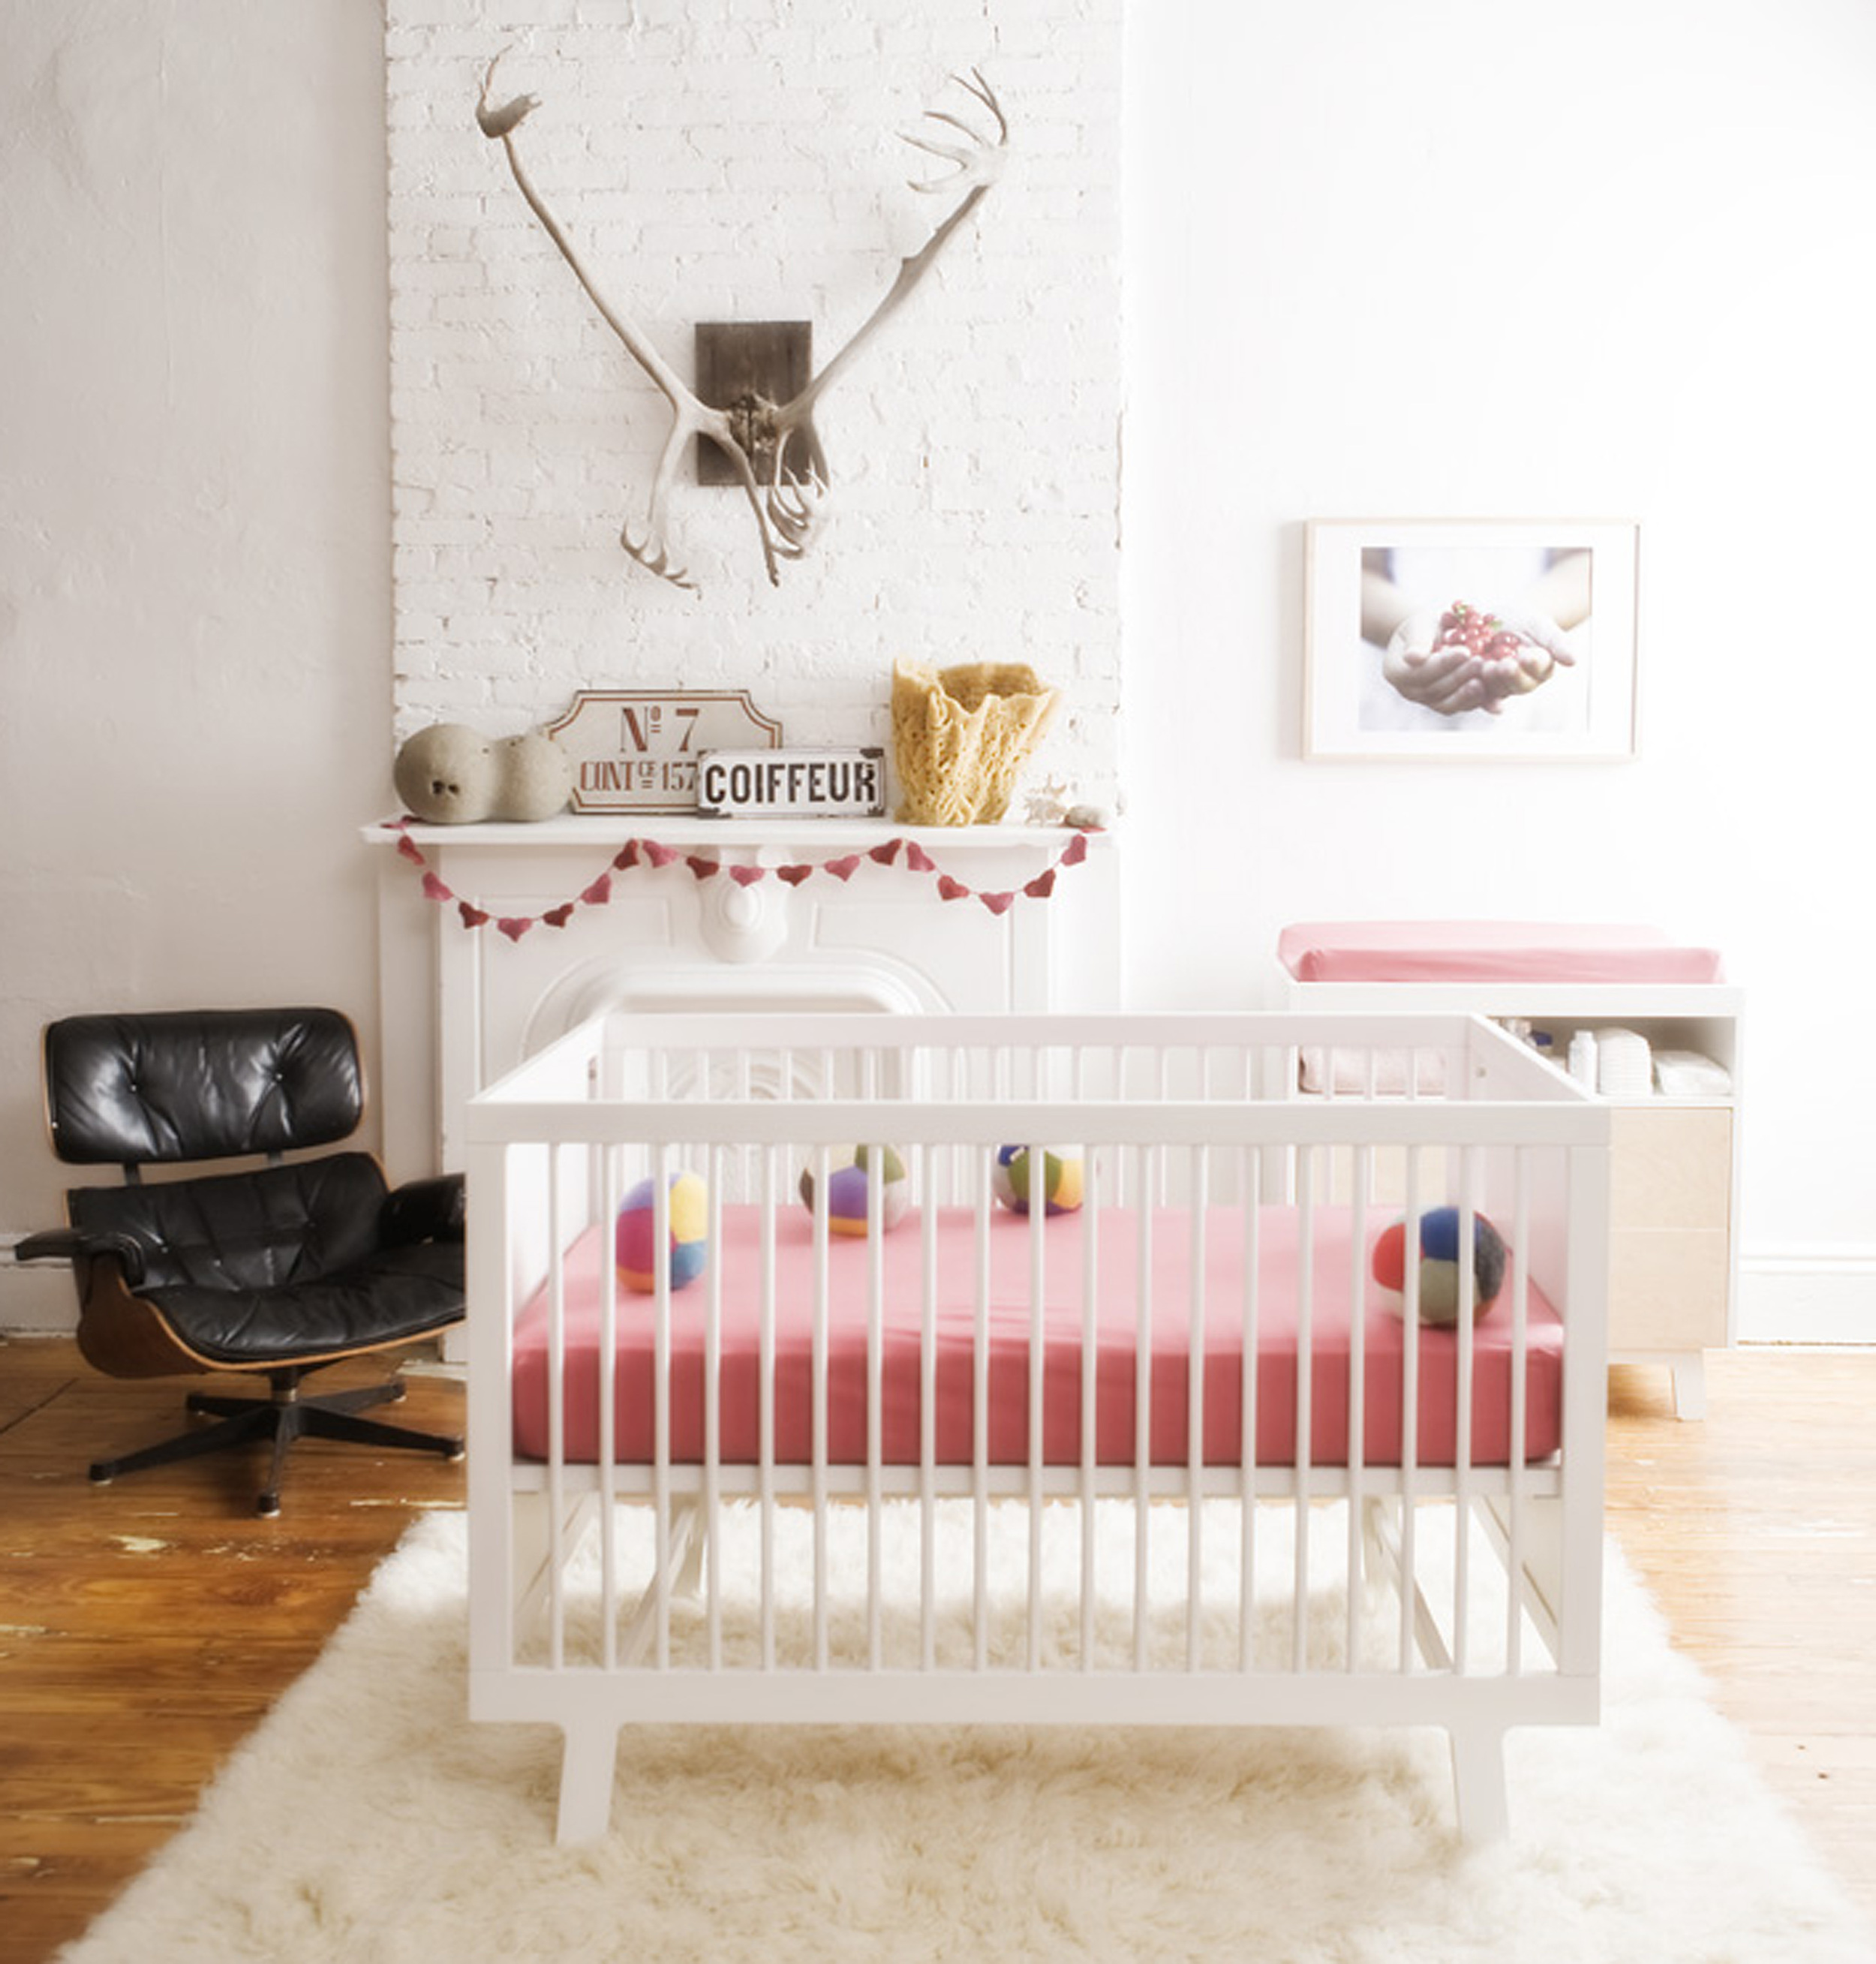 {swim images via  OeufNYC  // nursery images via  babycubby  //  Shoptadpole  //  Project Nursery }